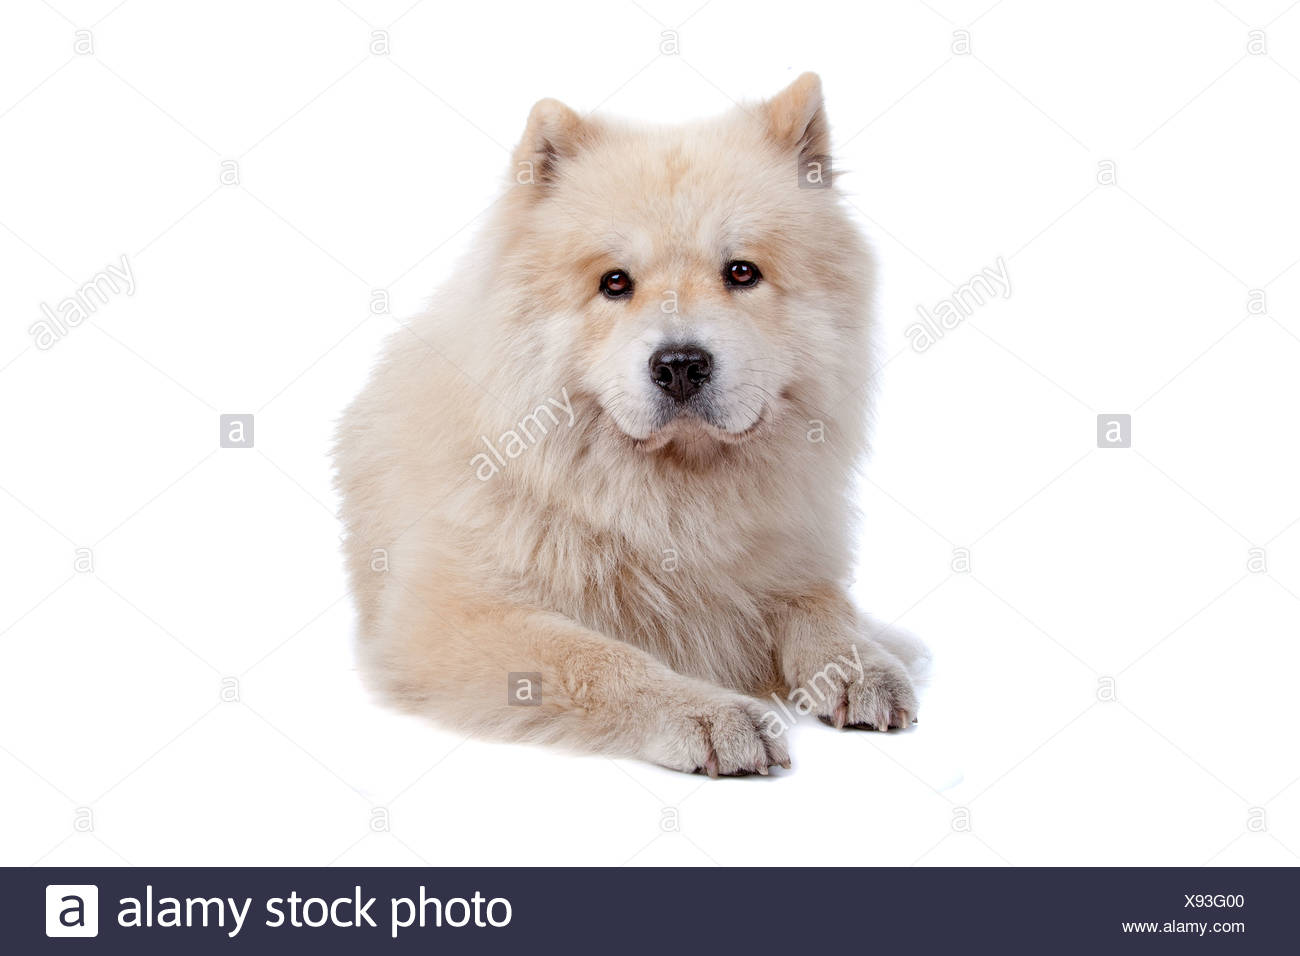 Cute mixed breed dog Chow-Chow and Samoyed lying and looking at camera, isolated on a white background - Stock Image